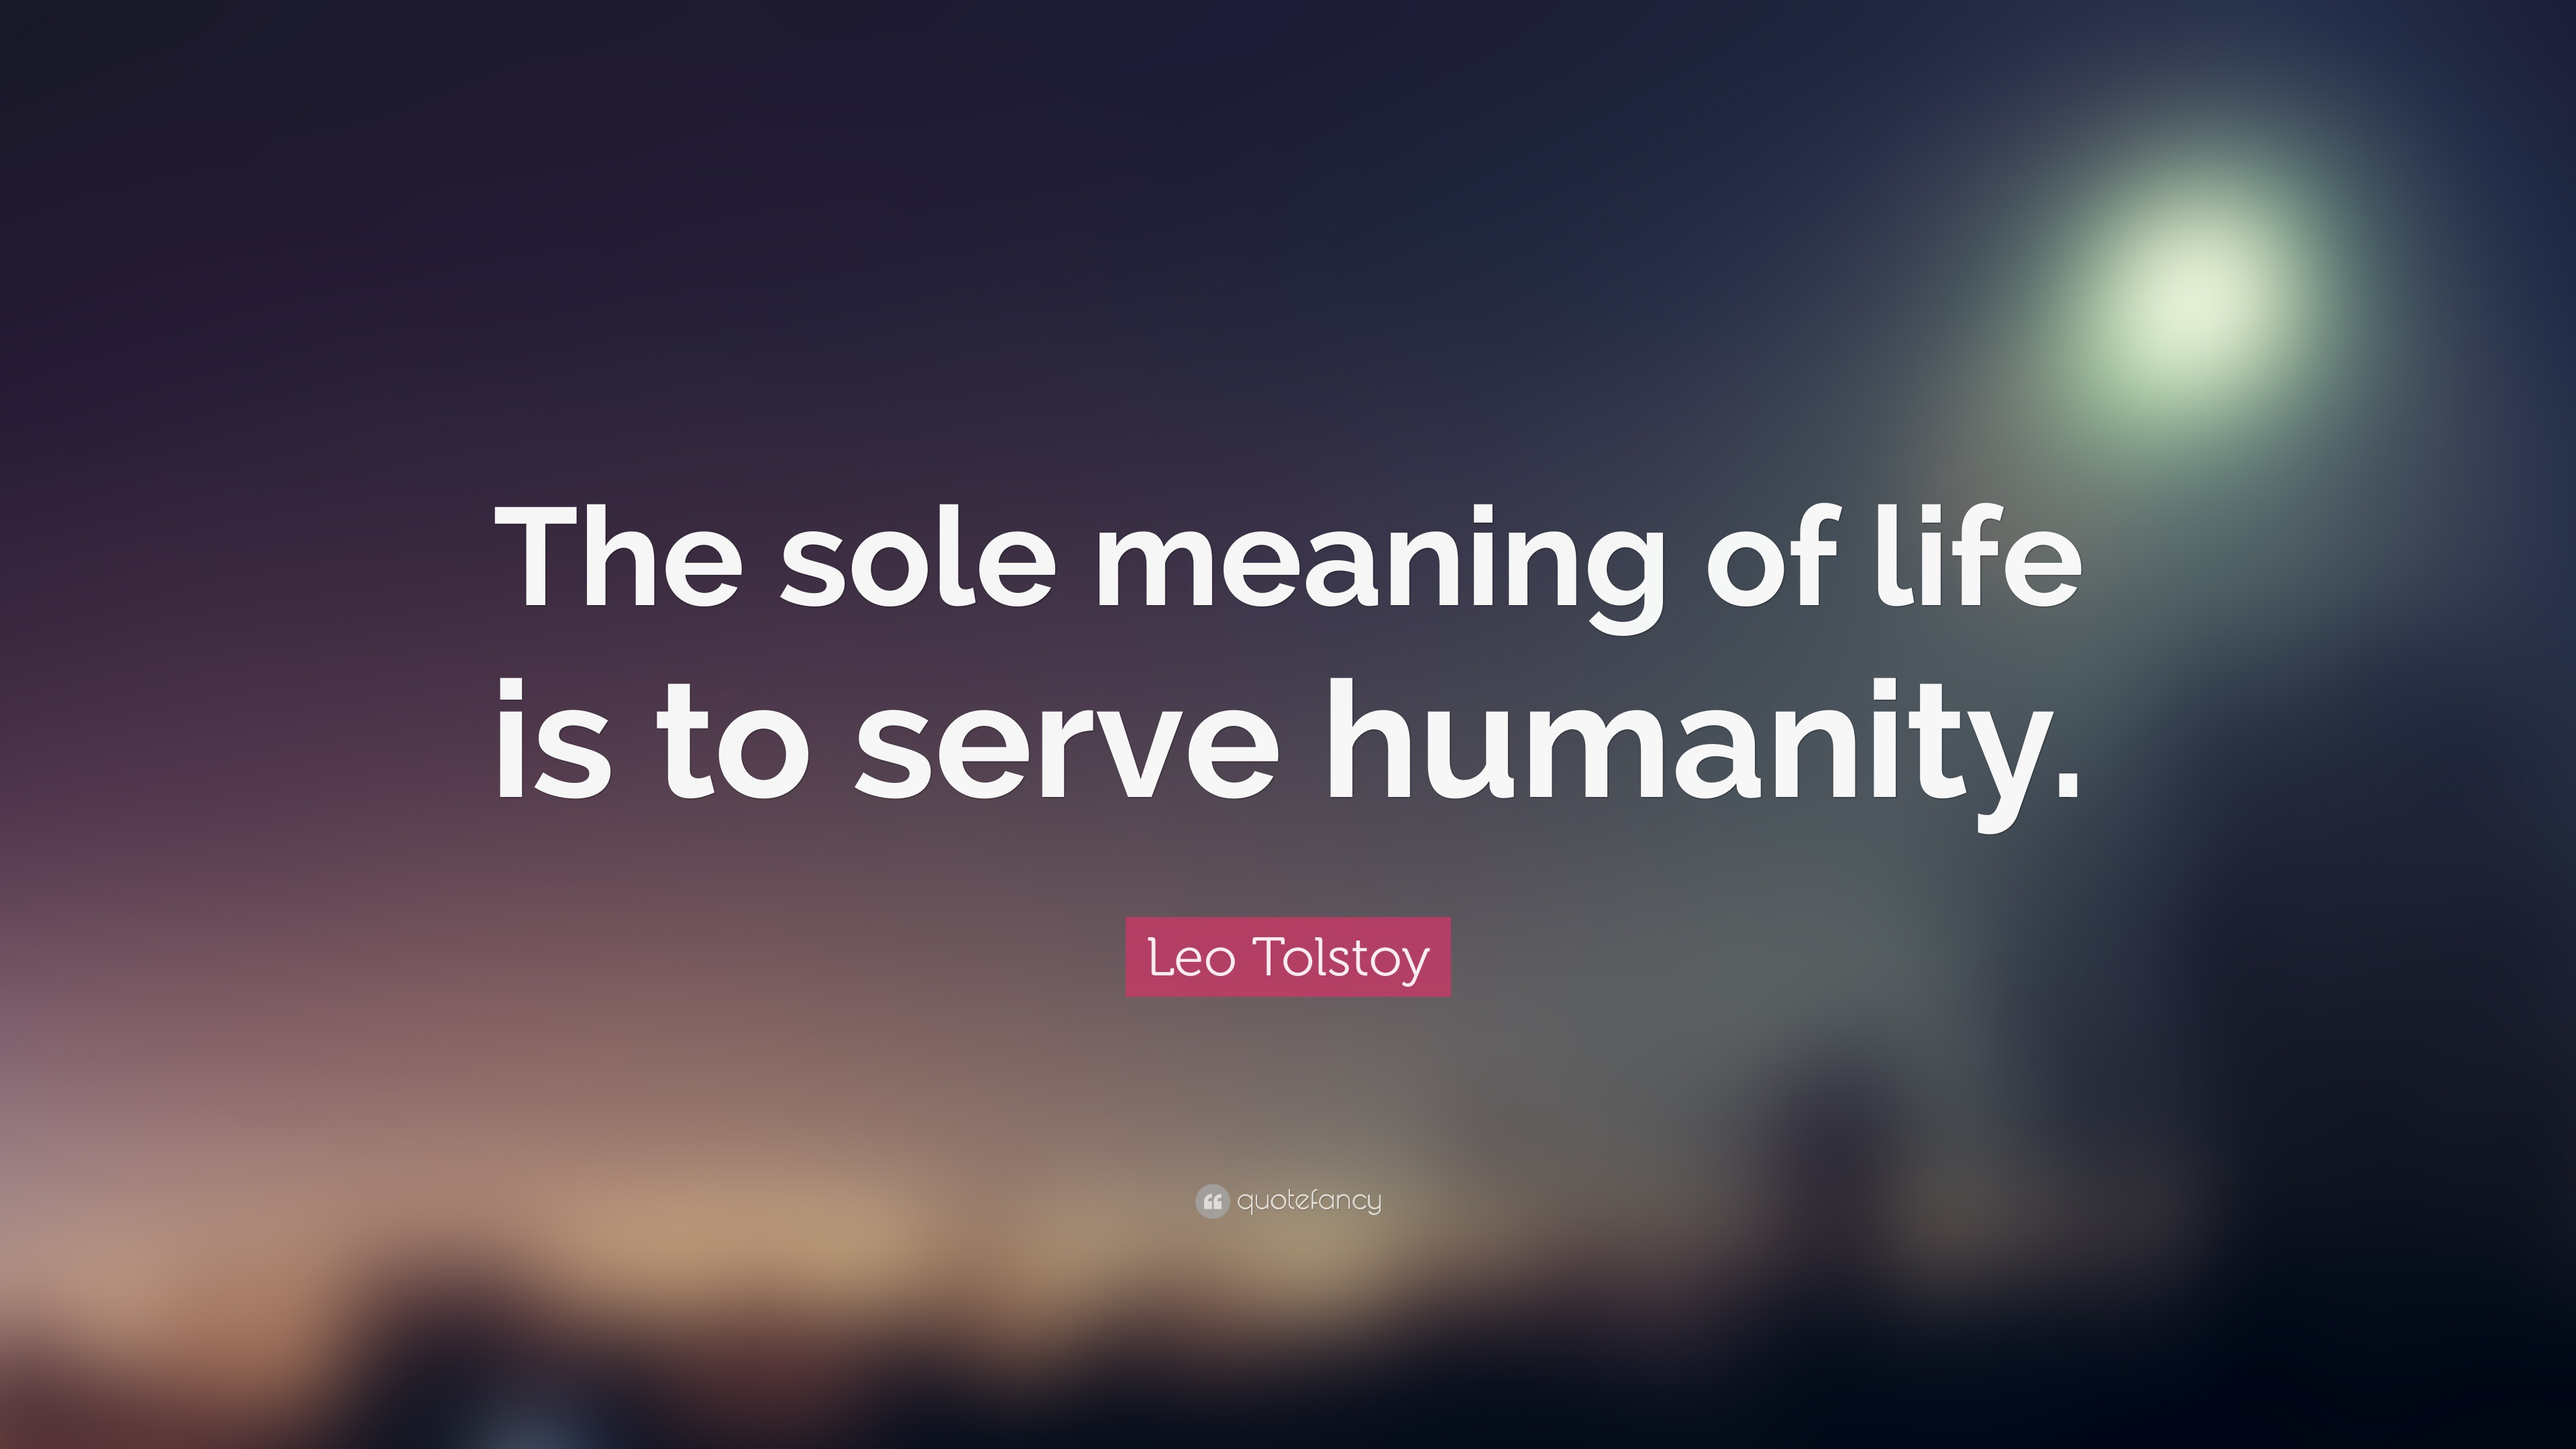 Vincent Van Gogh Quotes Wallpaper Leo Tolstoy Quote The Sole Meaning Of Life Is To Serve